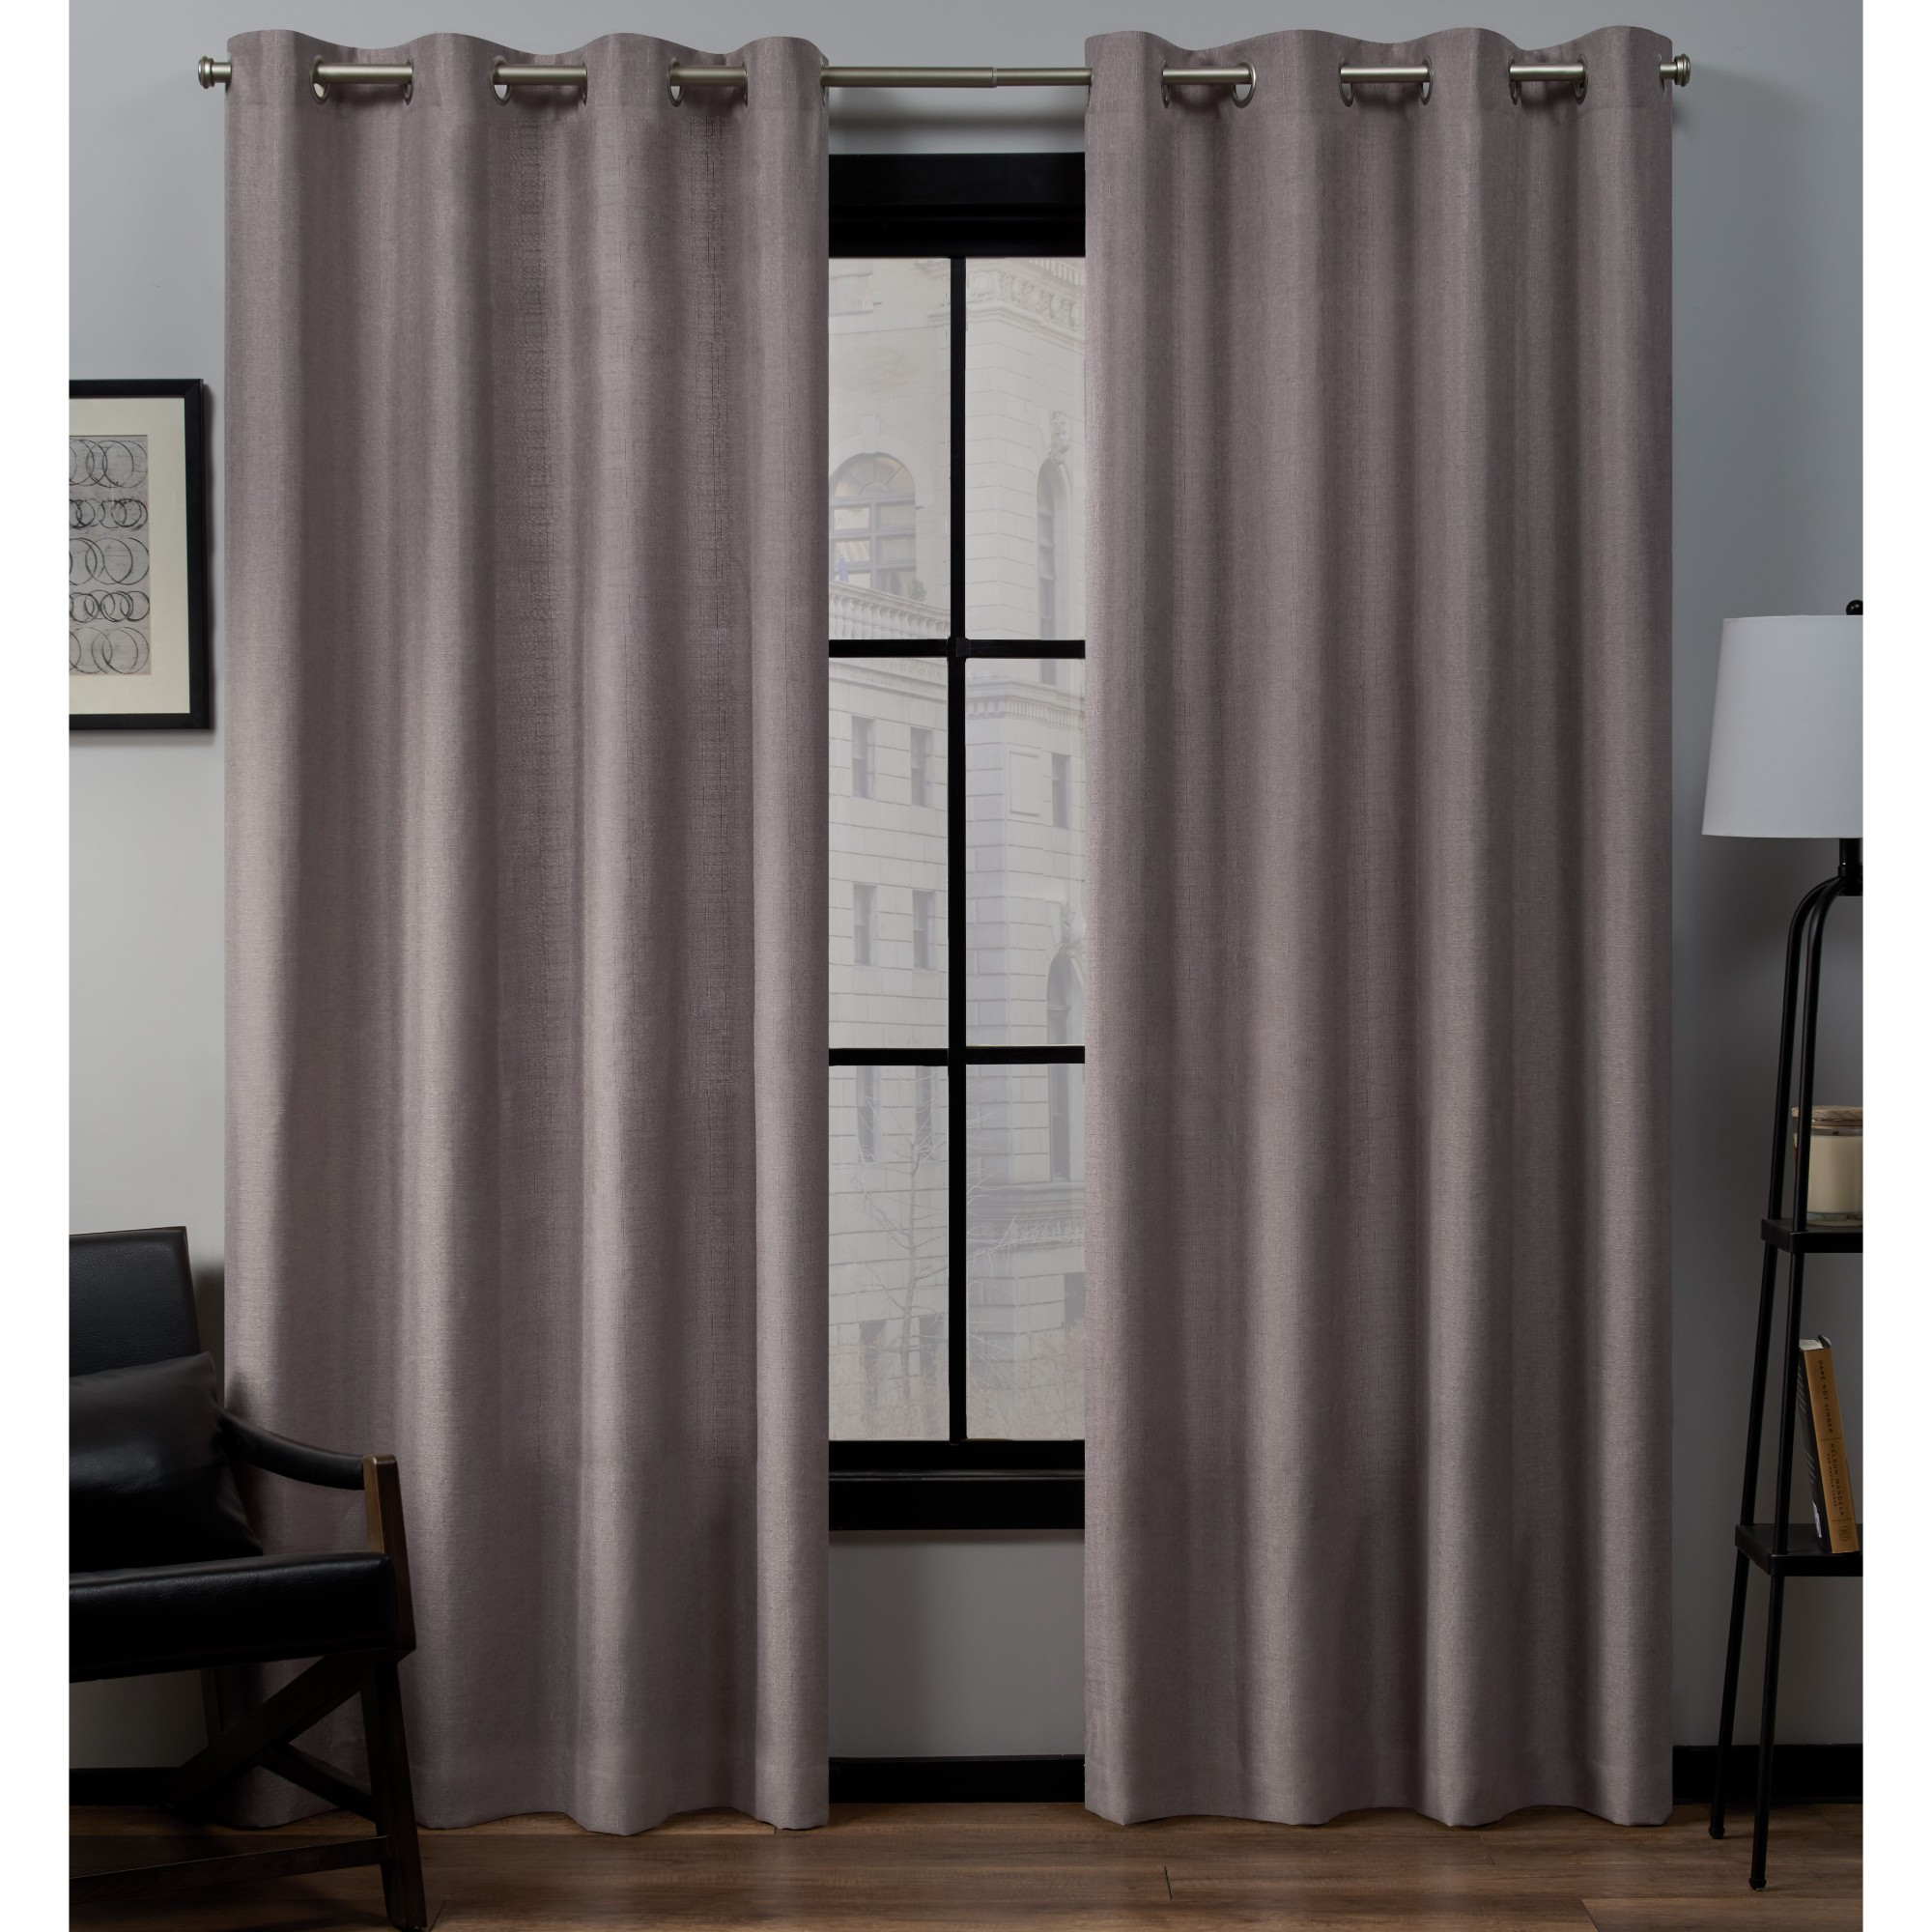 """54""""x84"""" Loha Linen Grommet Top Window Curtain Panel Pair Throughout Thermal Textured Linen Grommet Top Curtain Panel Pairs (View 18 of 30)"""